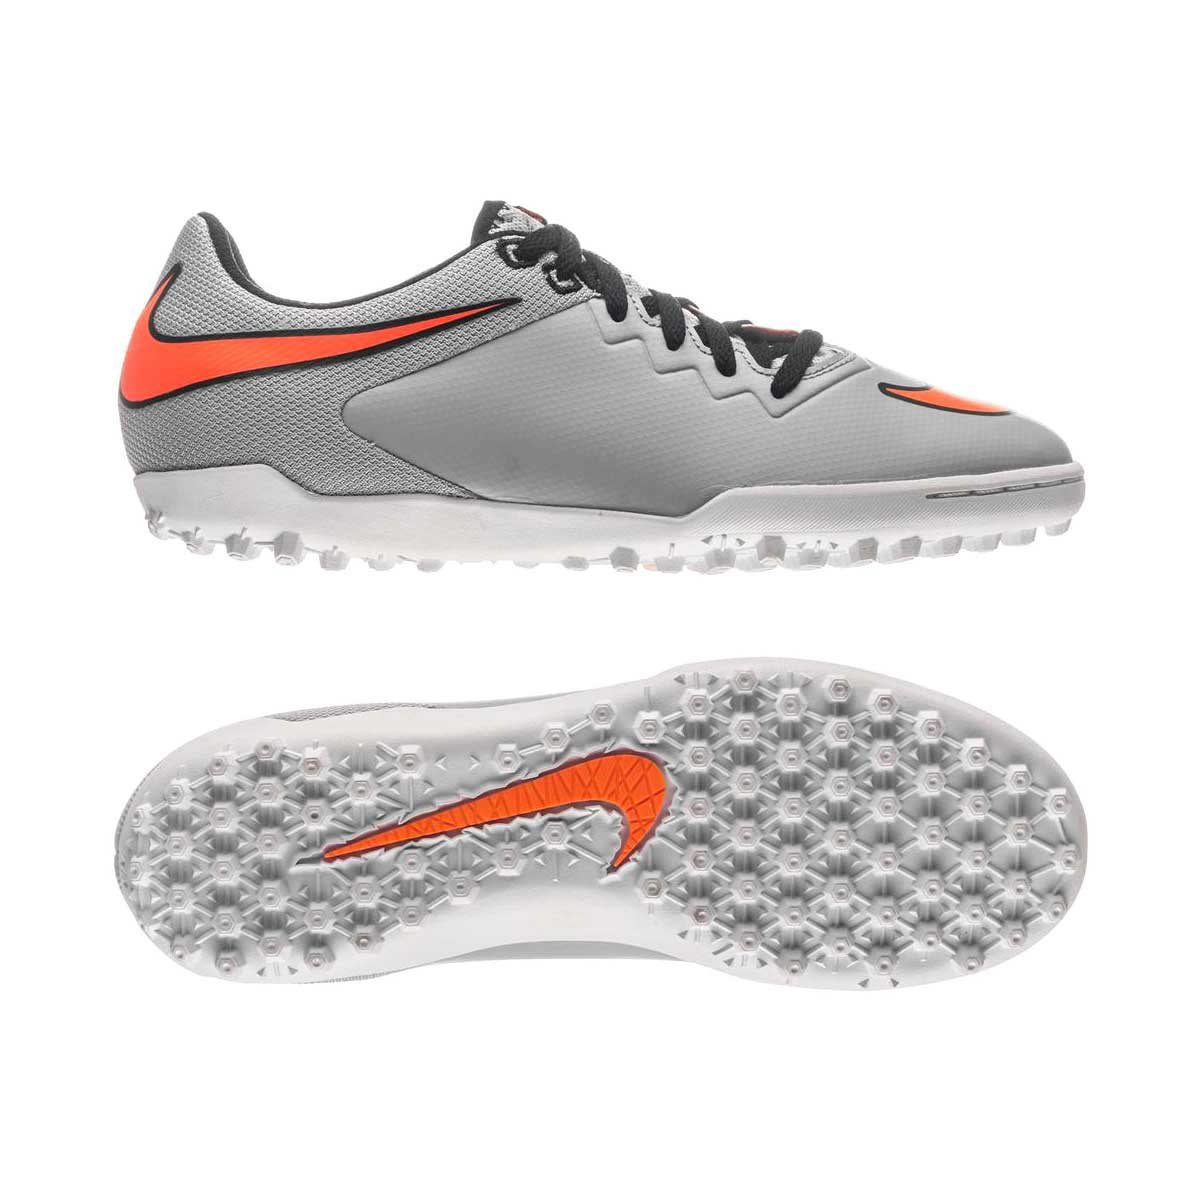 Football Shoes, Football, Sports, Buy, Nike, Nike HypervenomX Pro TF  Football Shoes